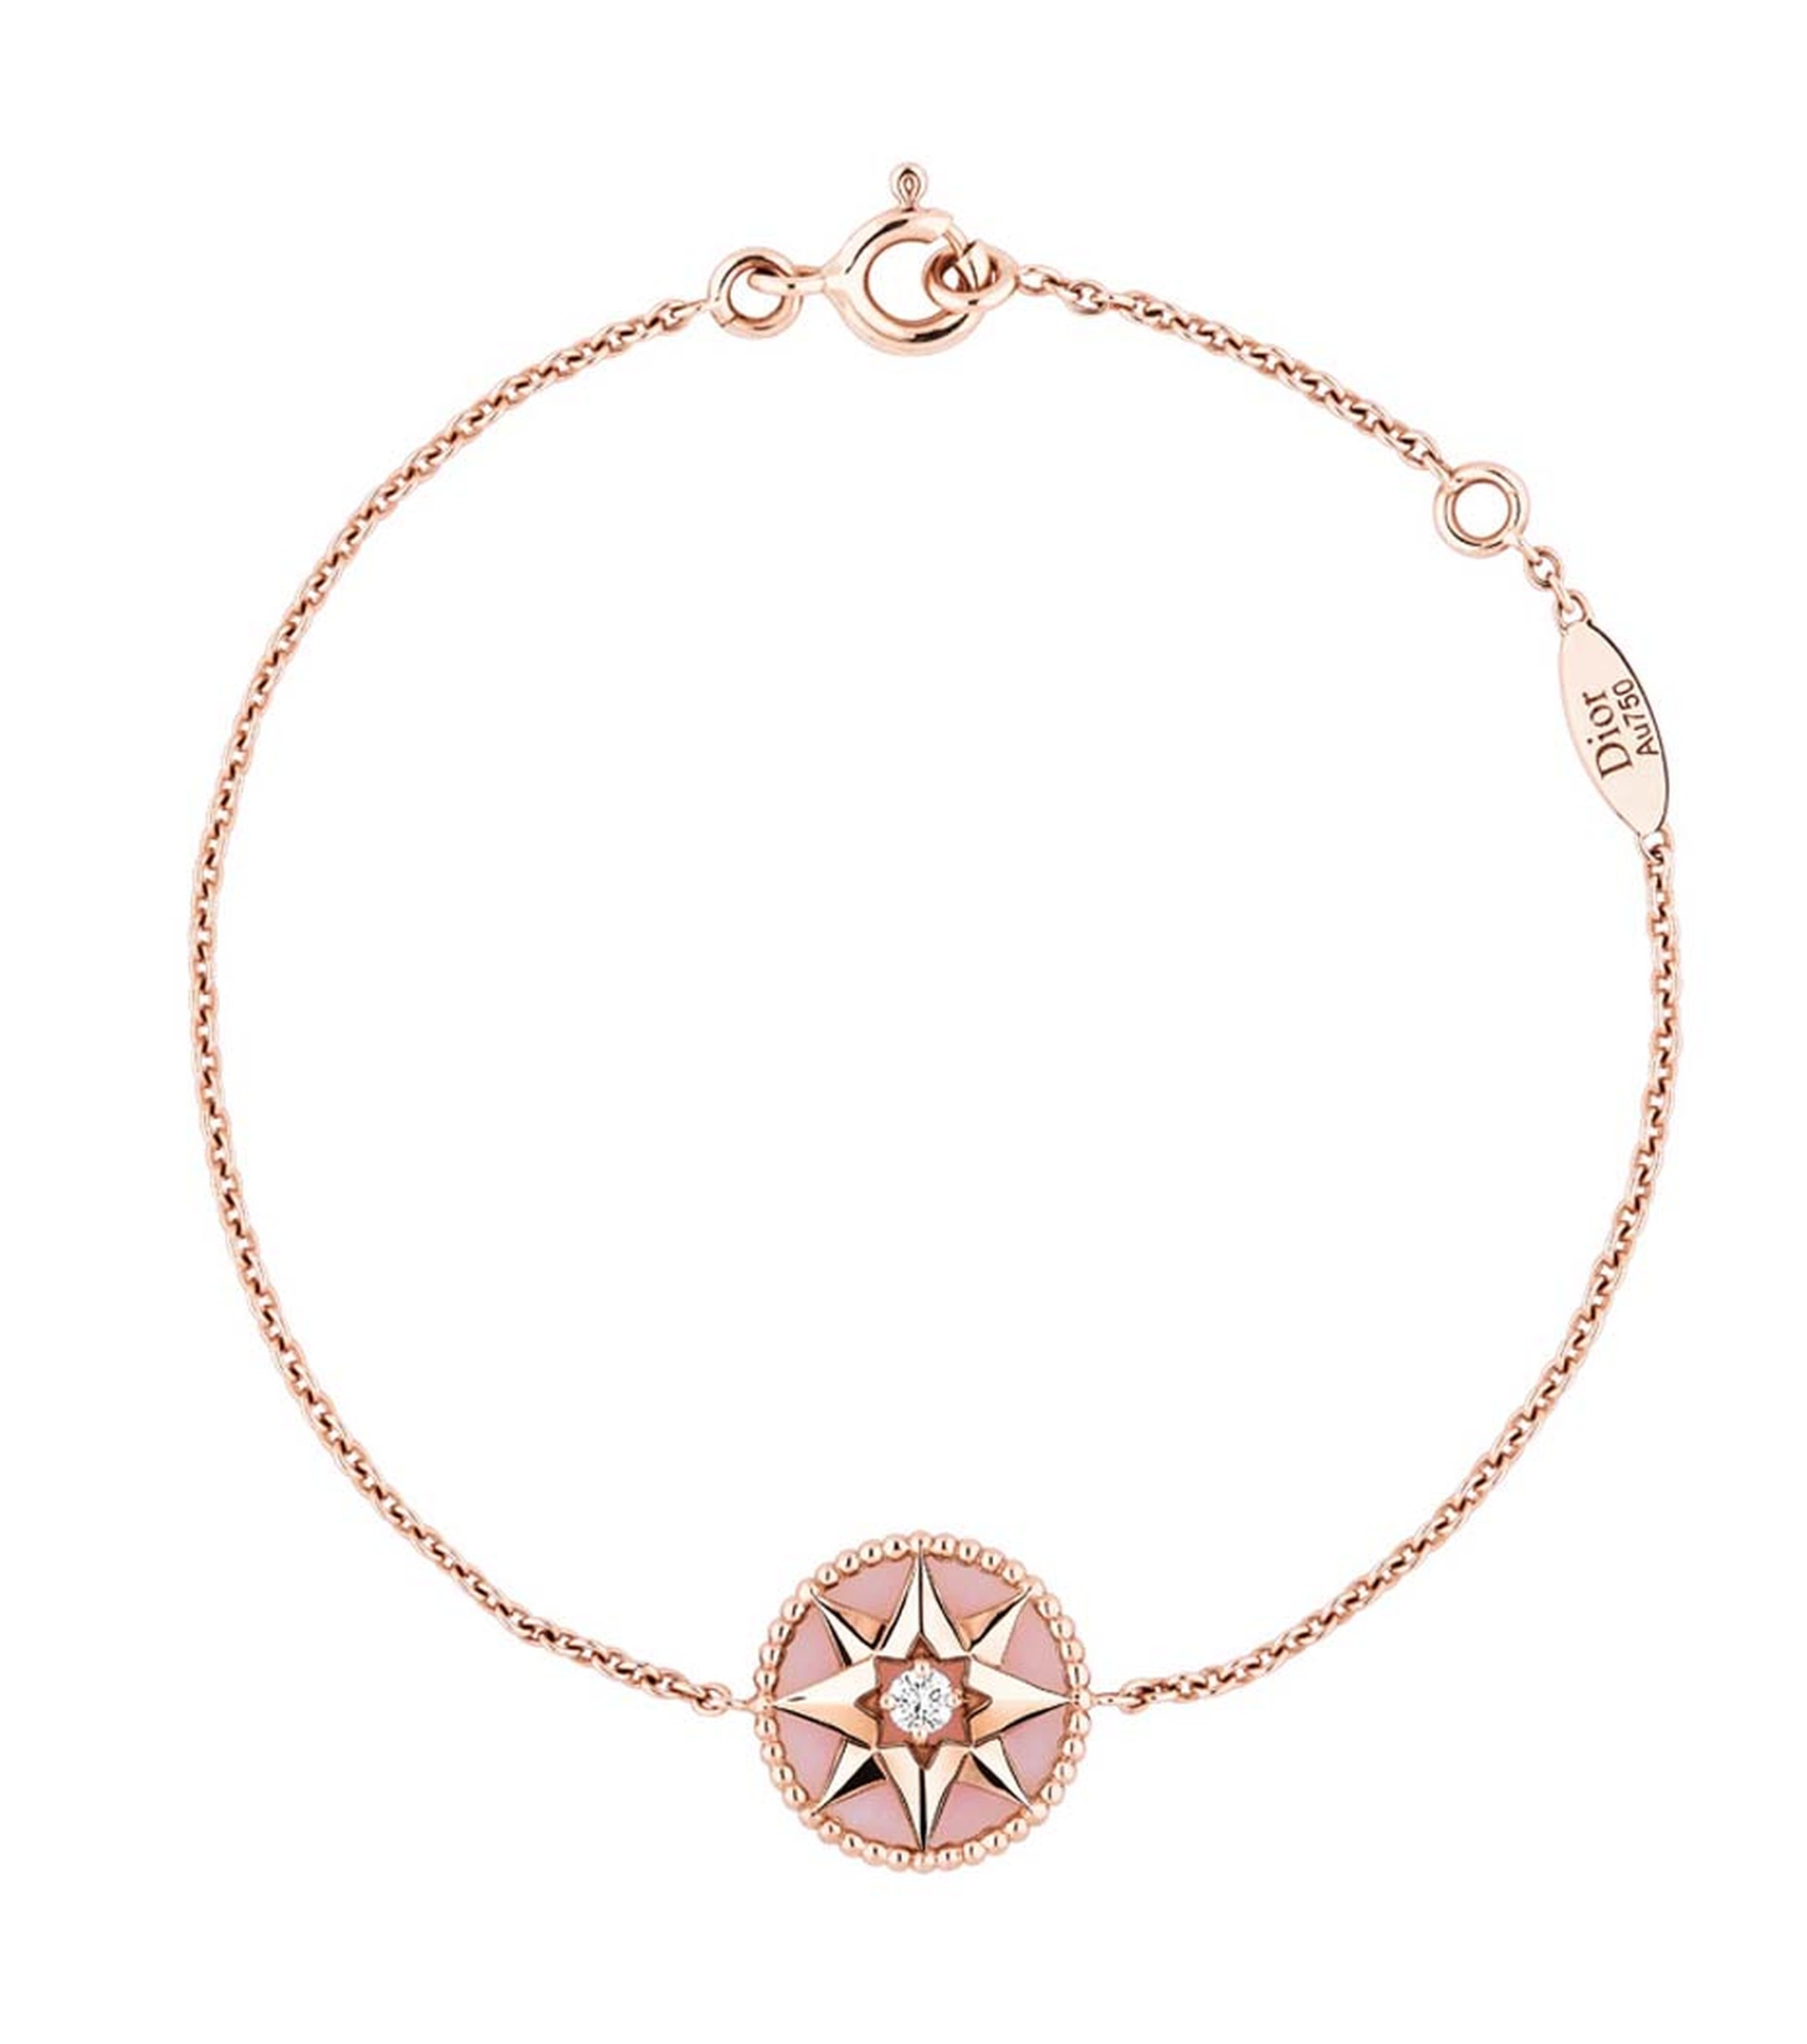 Dior Rose des Vents bracelet in pink gold and pink opal, set with a round brilliant diamond.